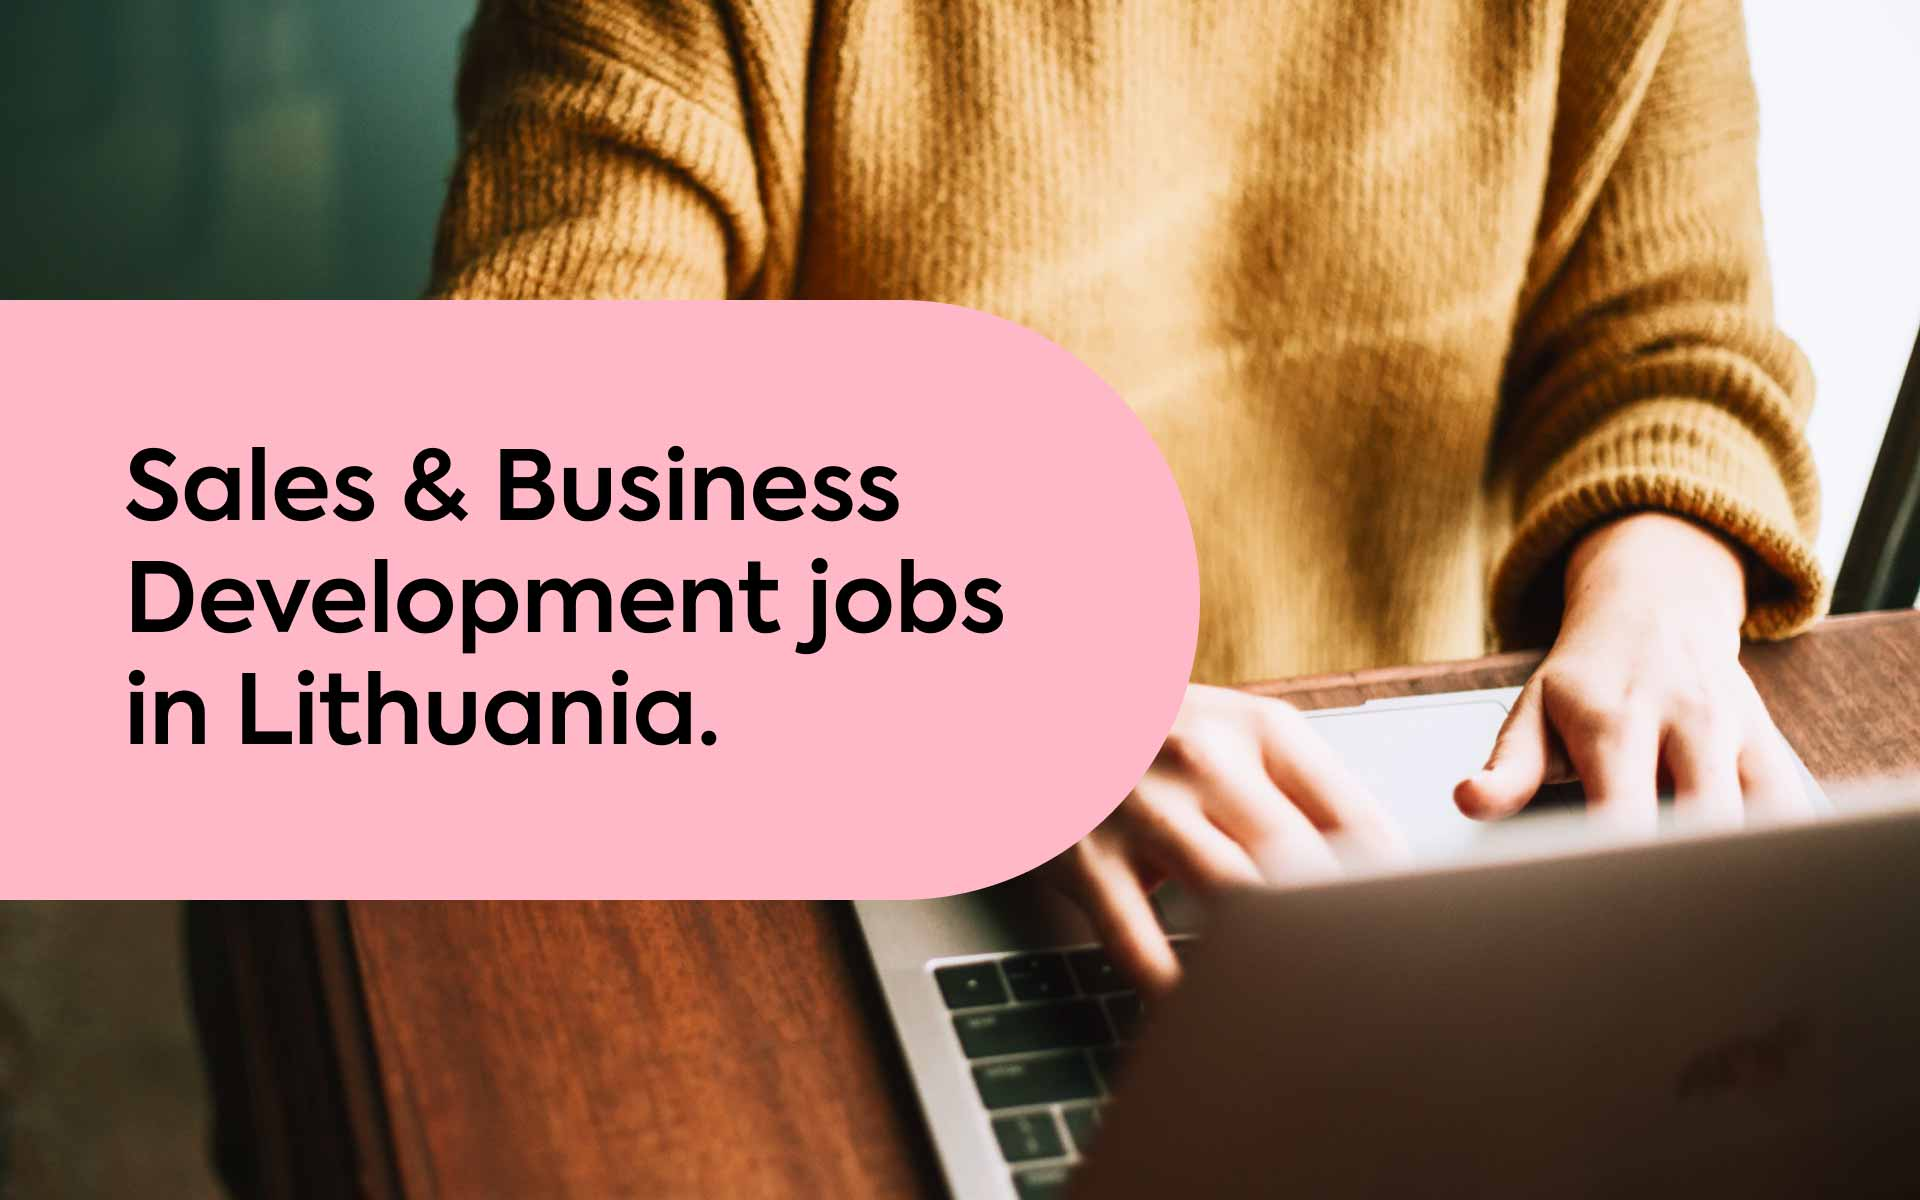 sales jobs in Lithuania